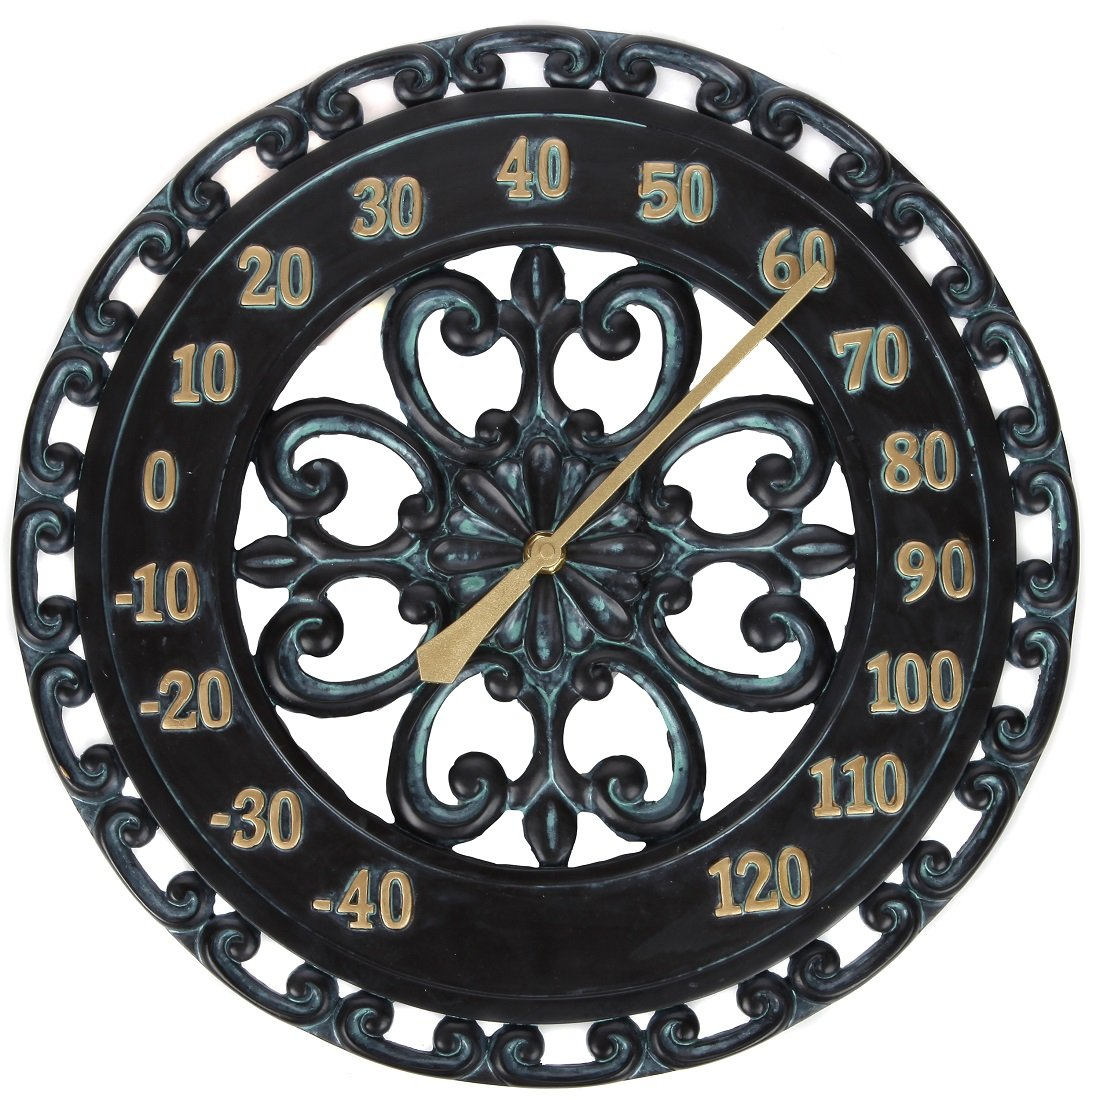 Lily's Home Hanging Verdigris Wall Dial Thermometer, Ideal for Indoor and Outdoor Use, Black (13 Inches)